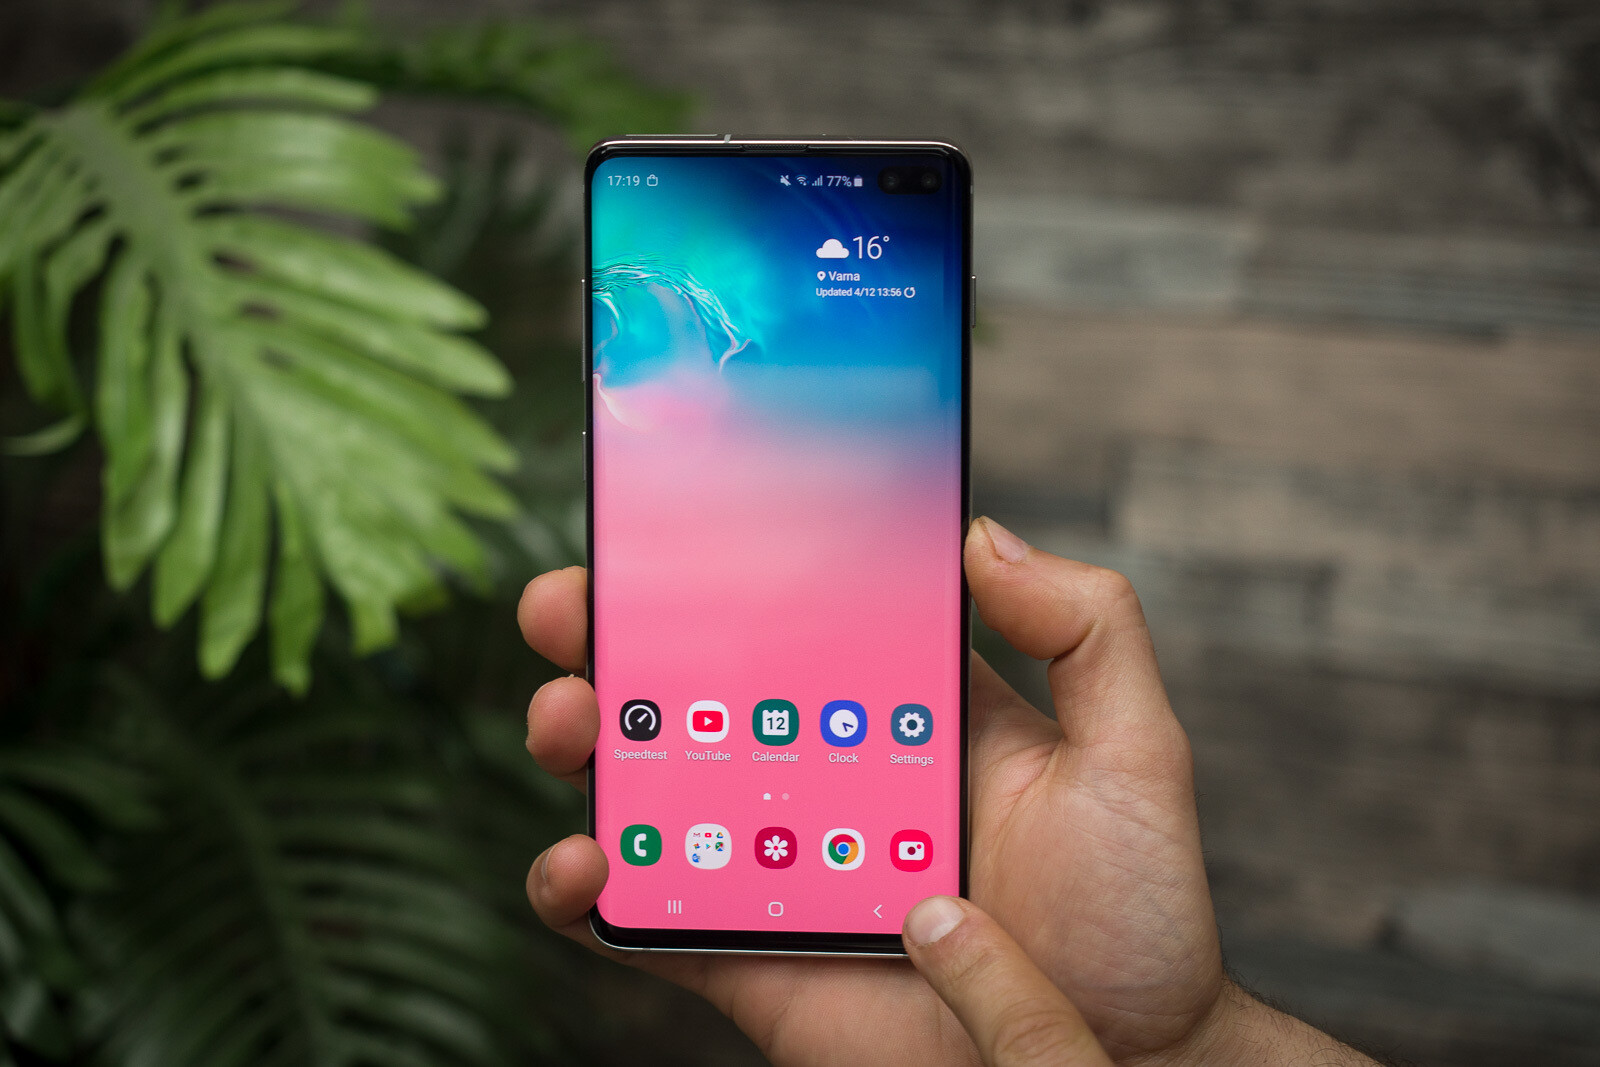 How to make a GIF on Samsung's Galaxy S10, S10 Plus or S10e